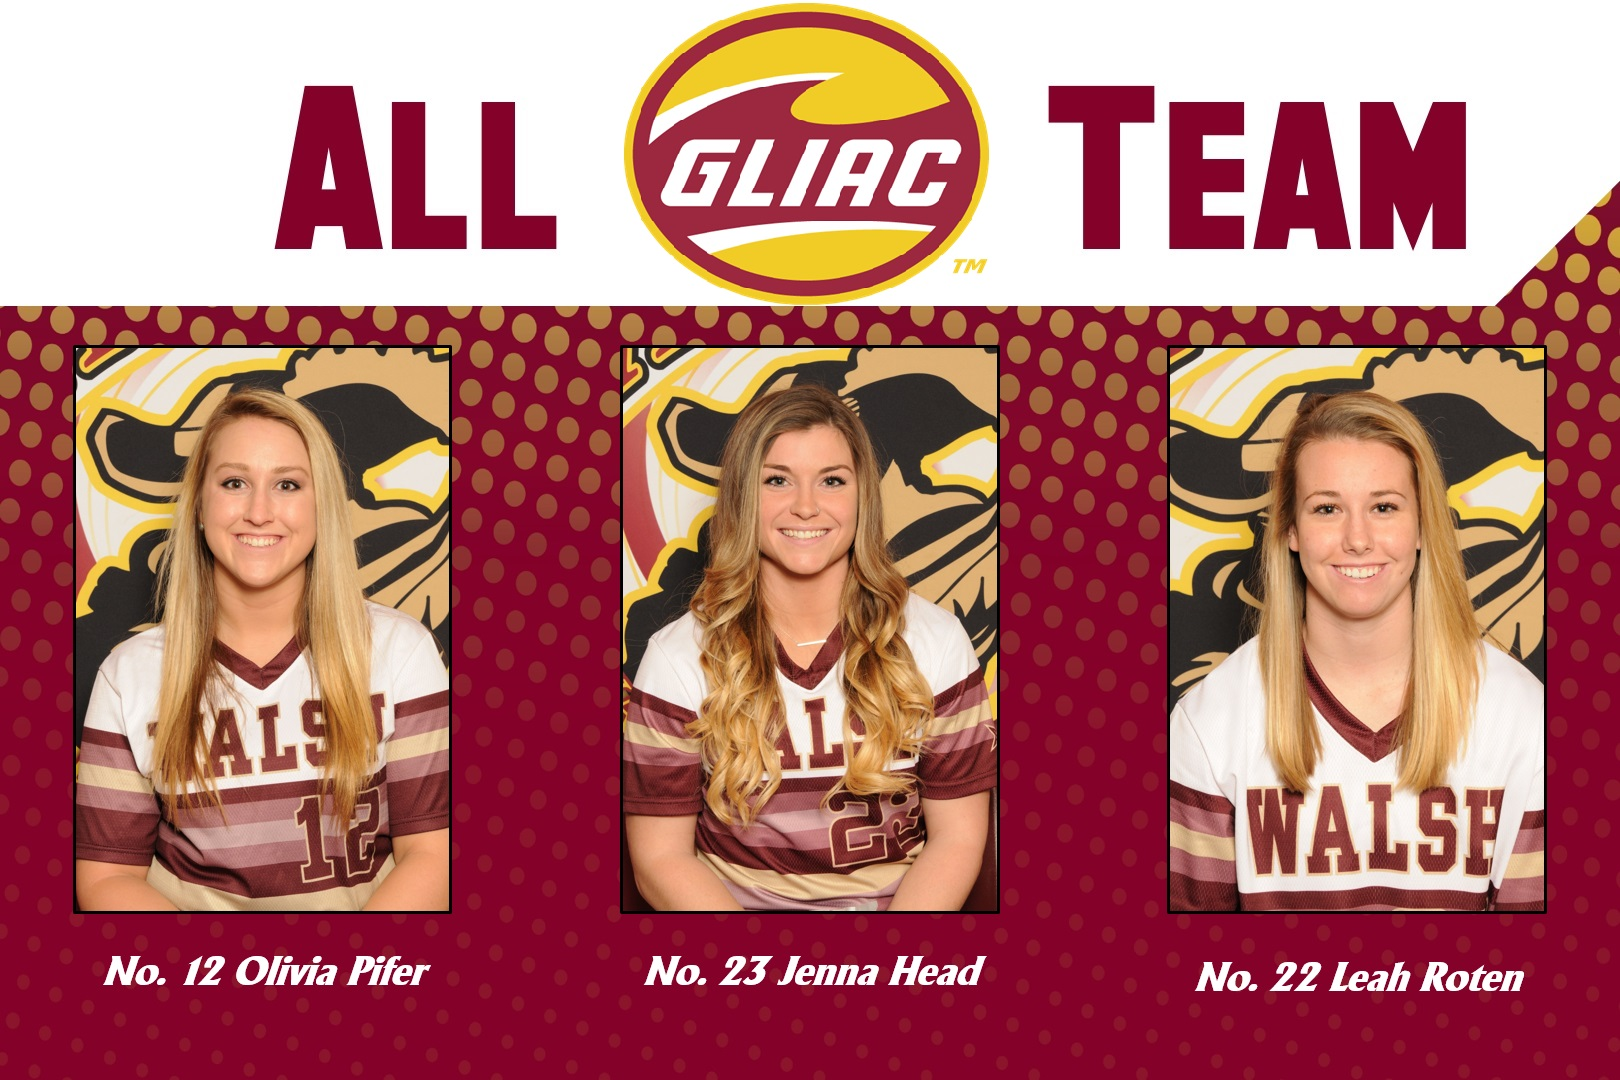 Softball Trio Named to All-GLIAC Team